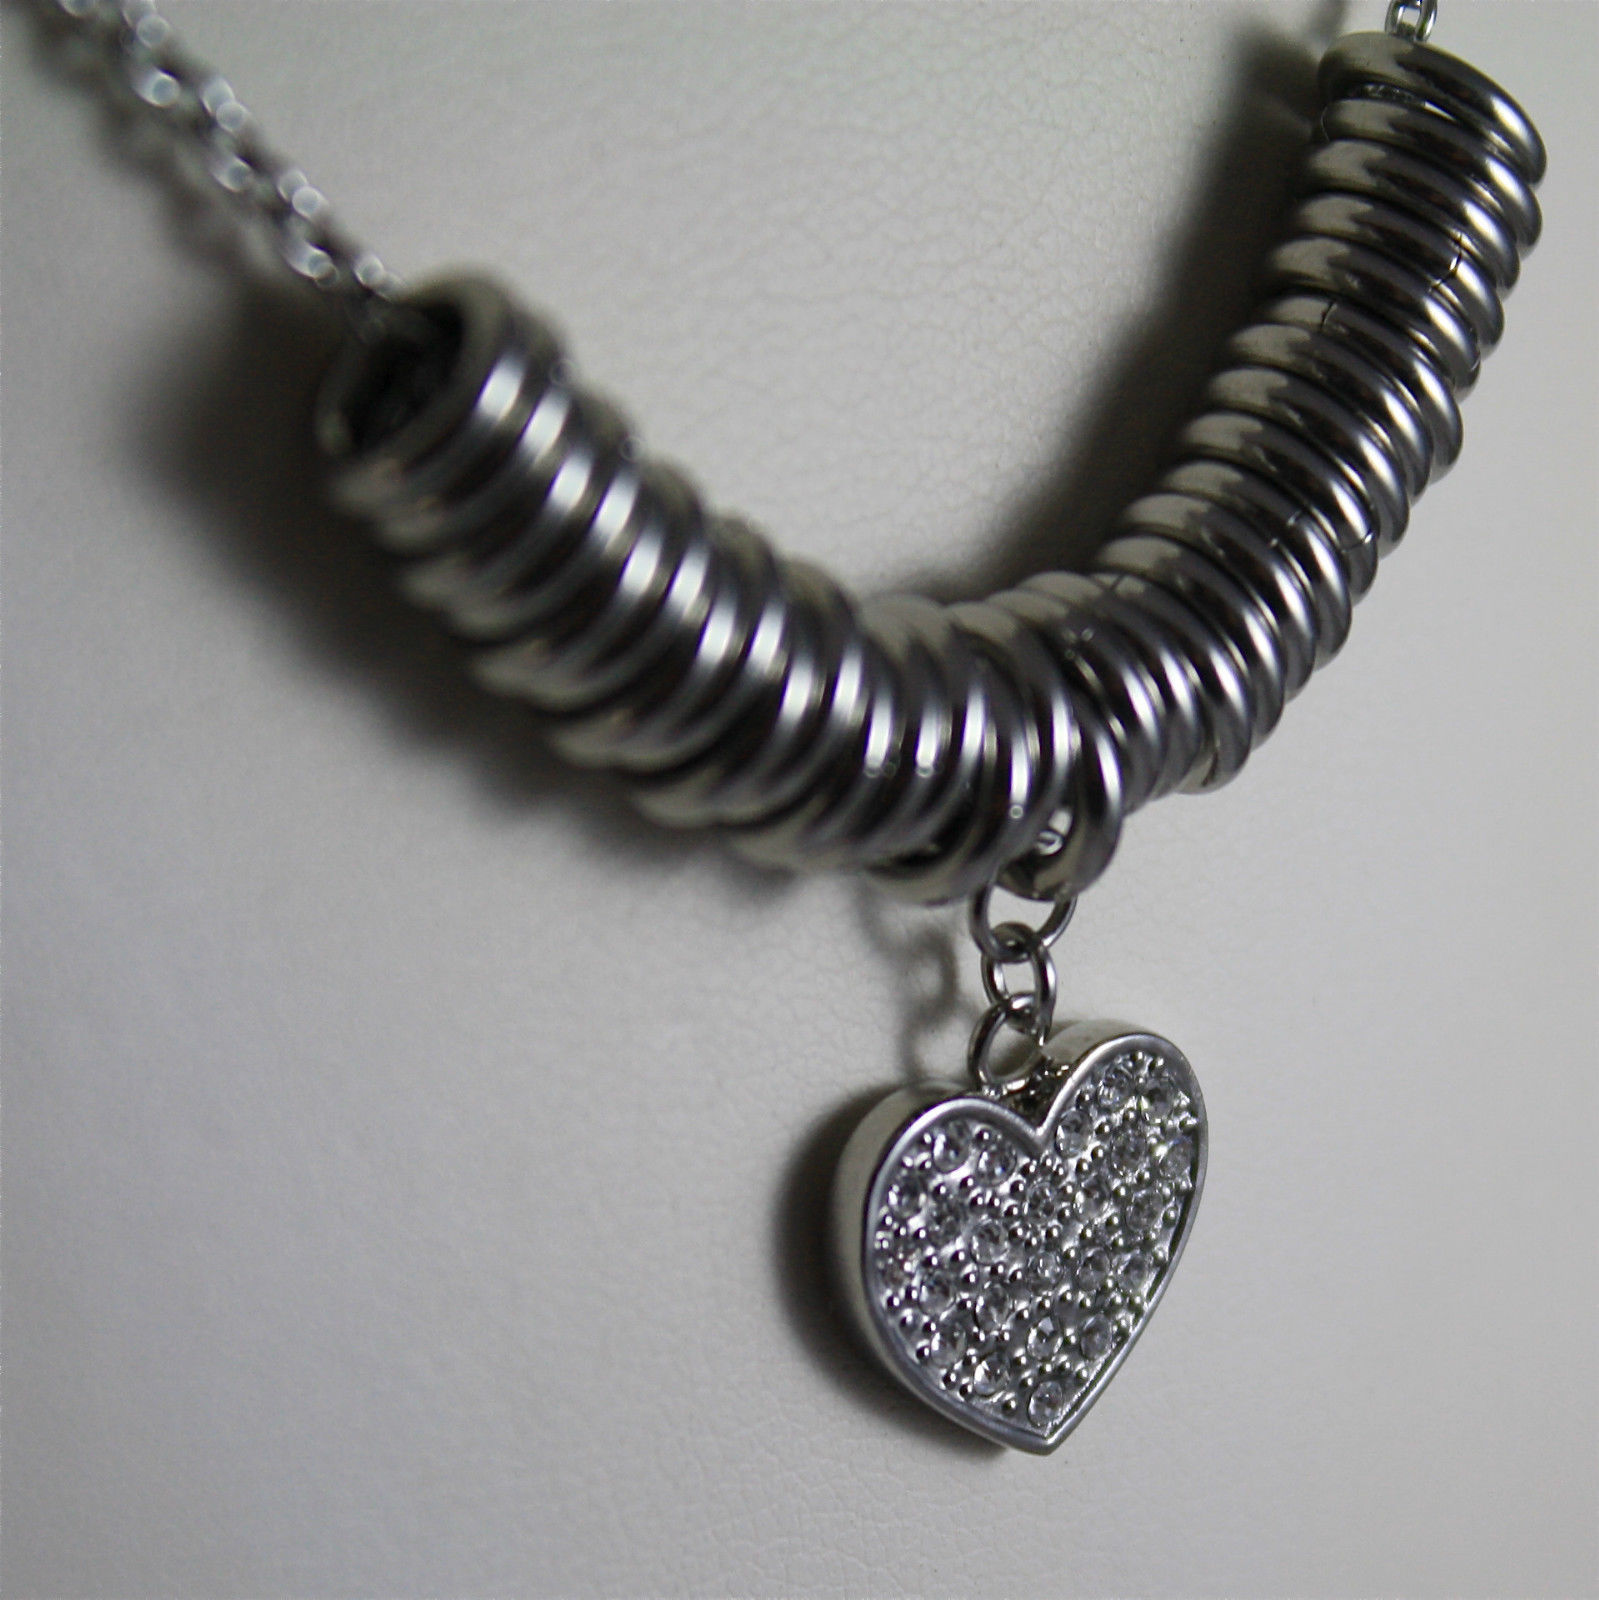 S'AGAPO' NECKLACE, 316L STEEL, HEART PENDANT, FACETED CRYSTAL.